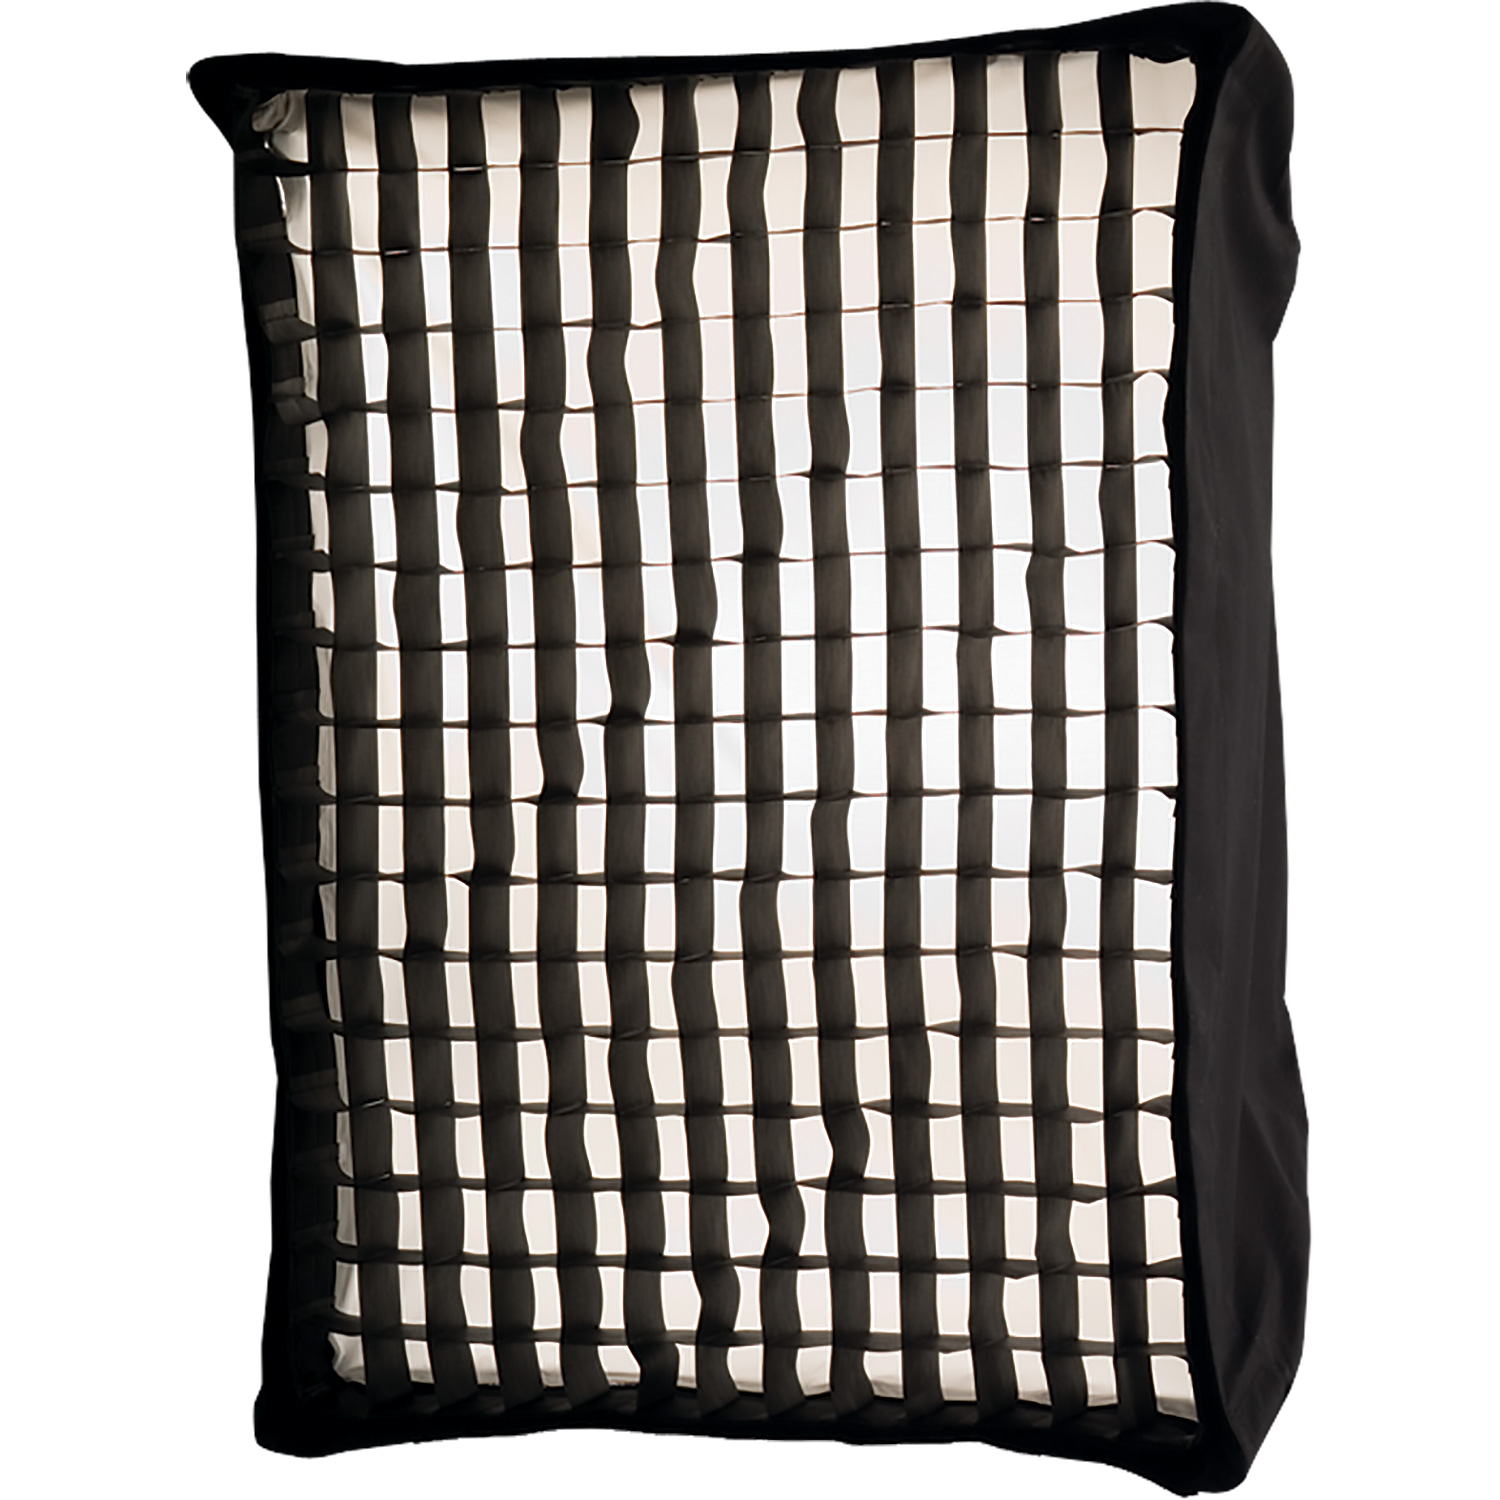 40° Egg Crate Grid for 16-in. x 22-in. Softbox